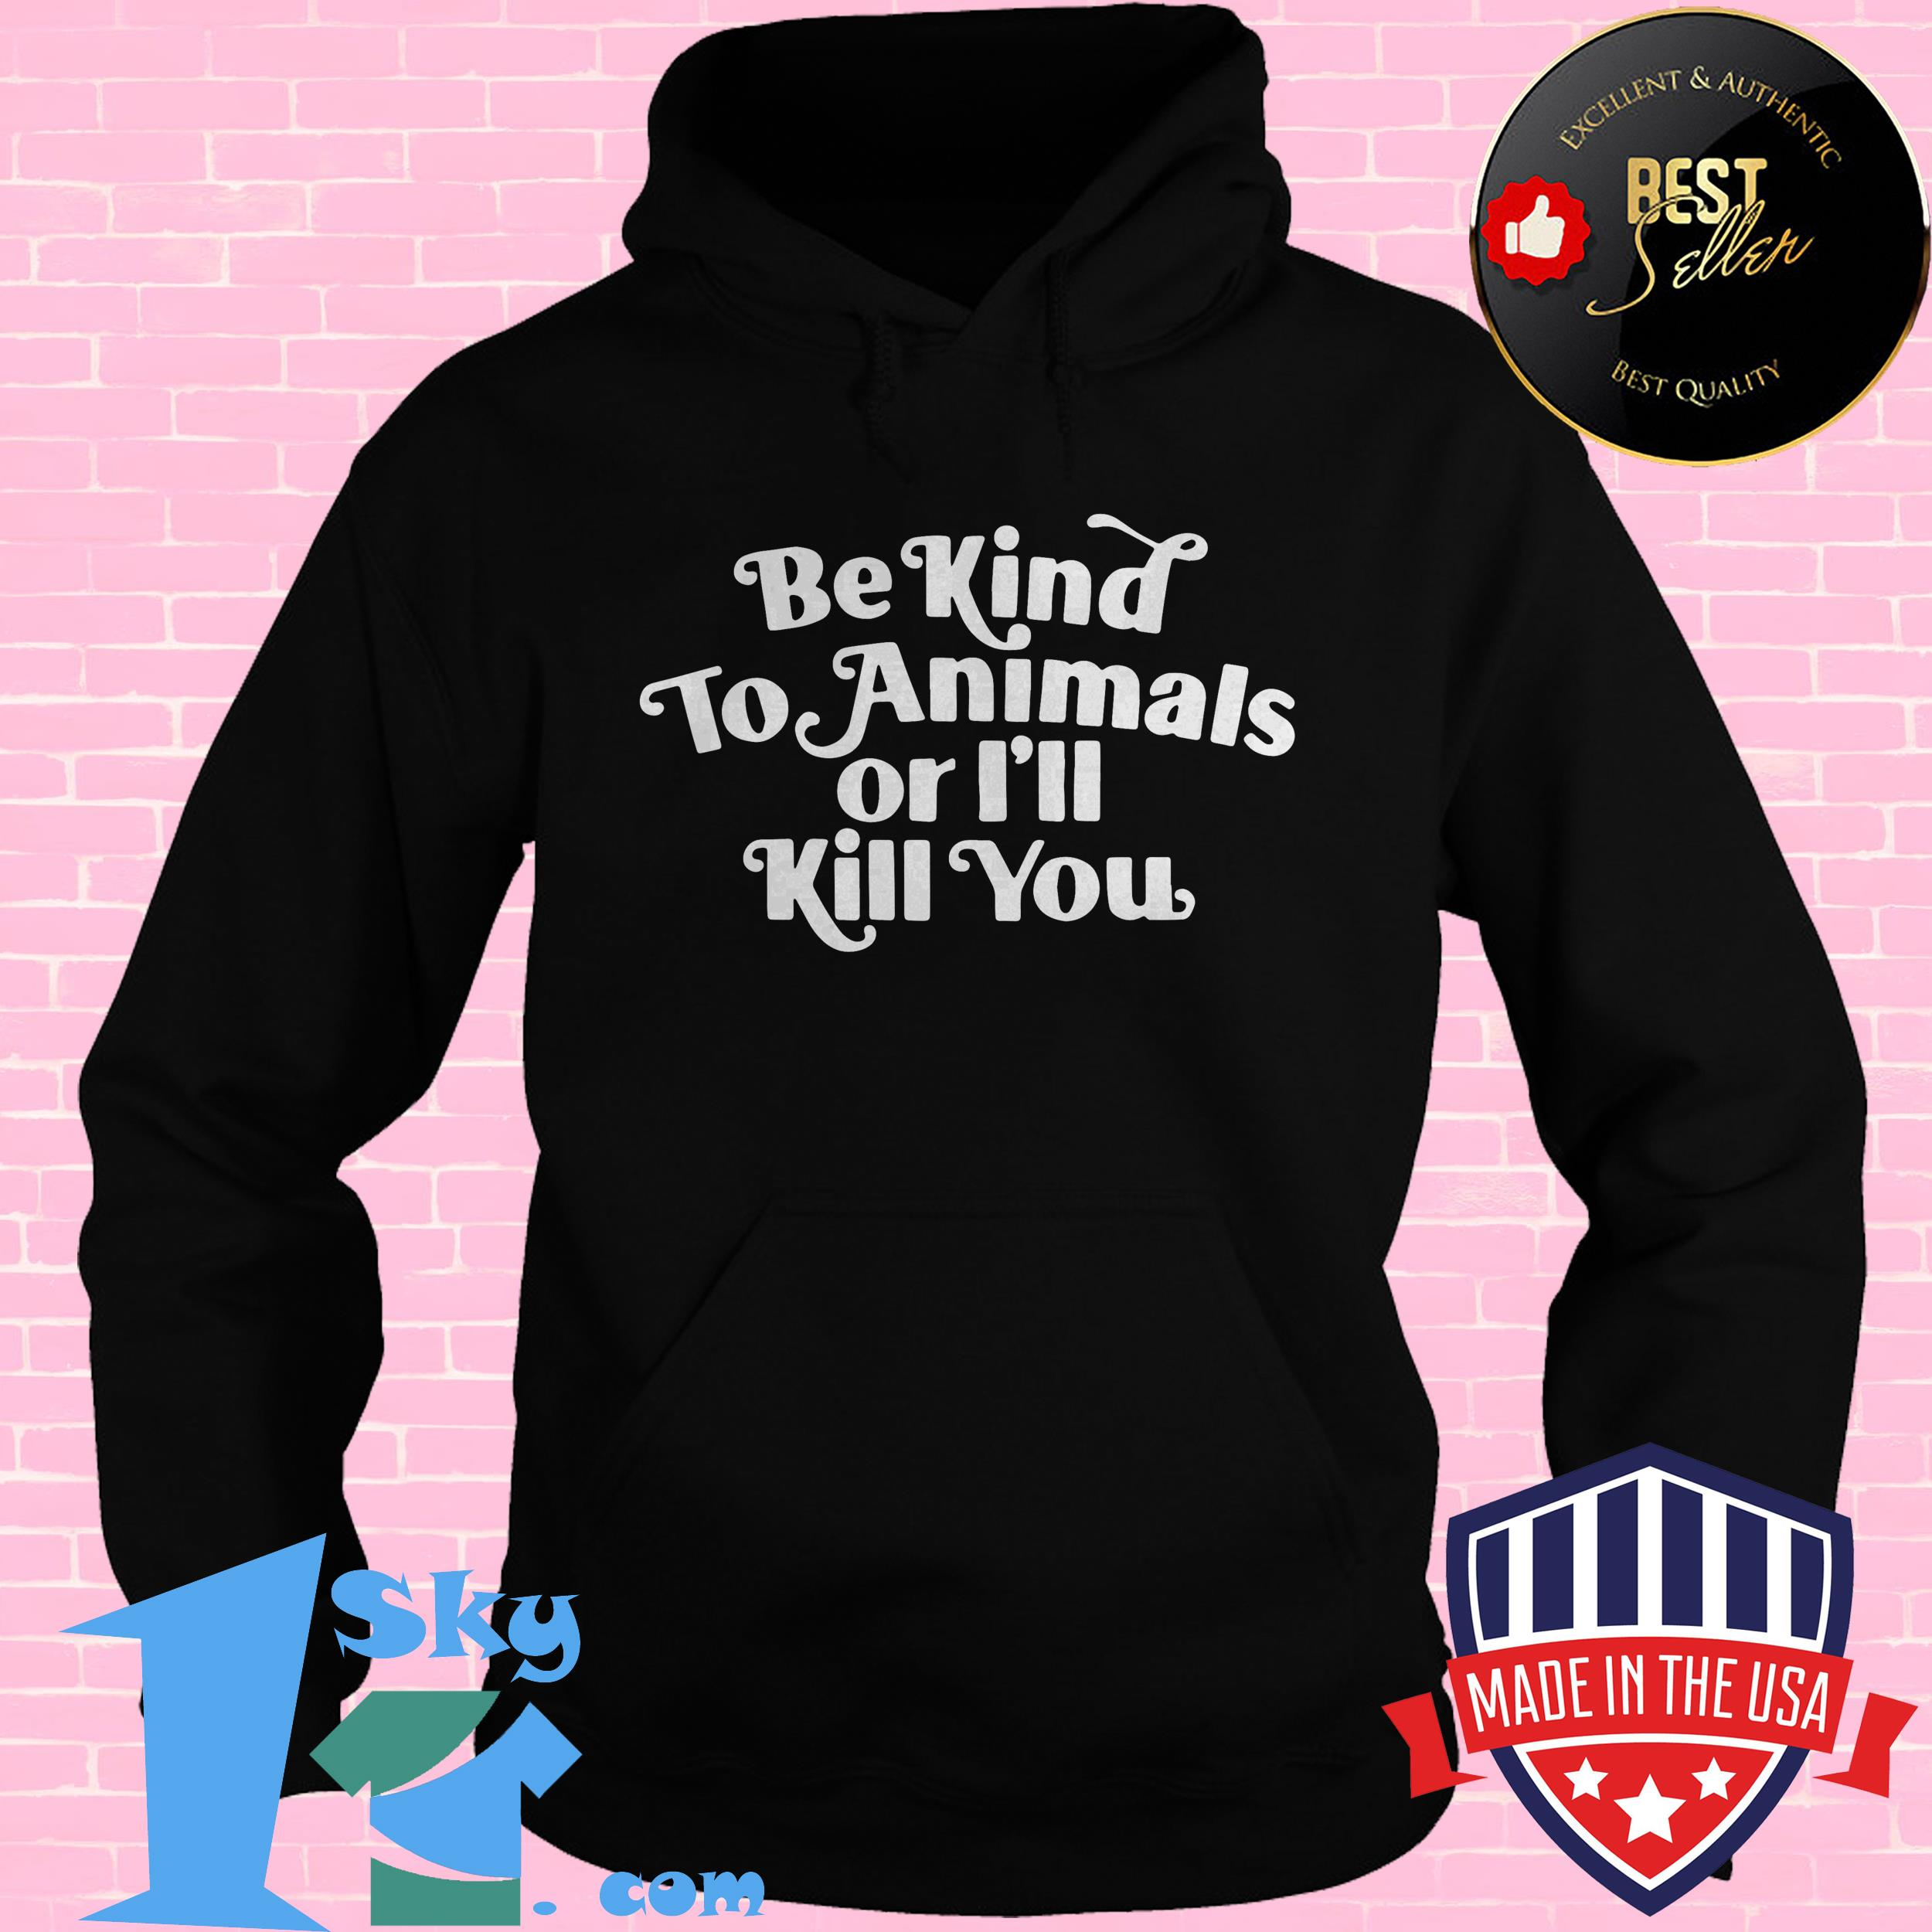 be kind to animal or ill kill you hoodie - Be Kind To Animal Or I'll Kill You shirt